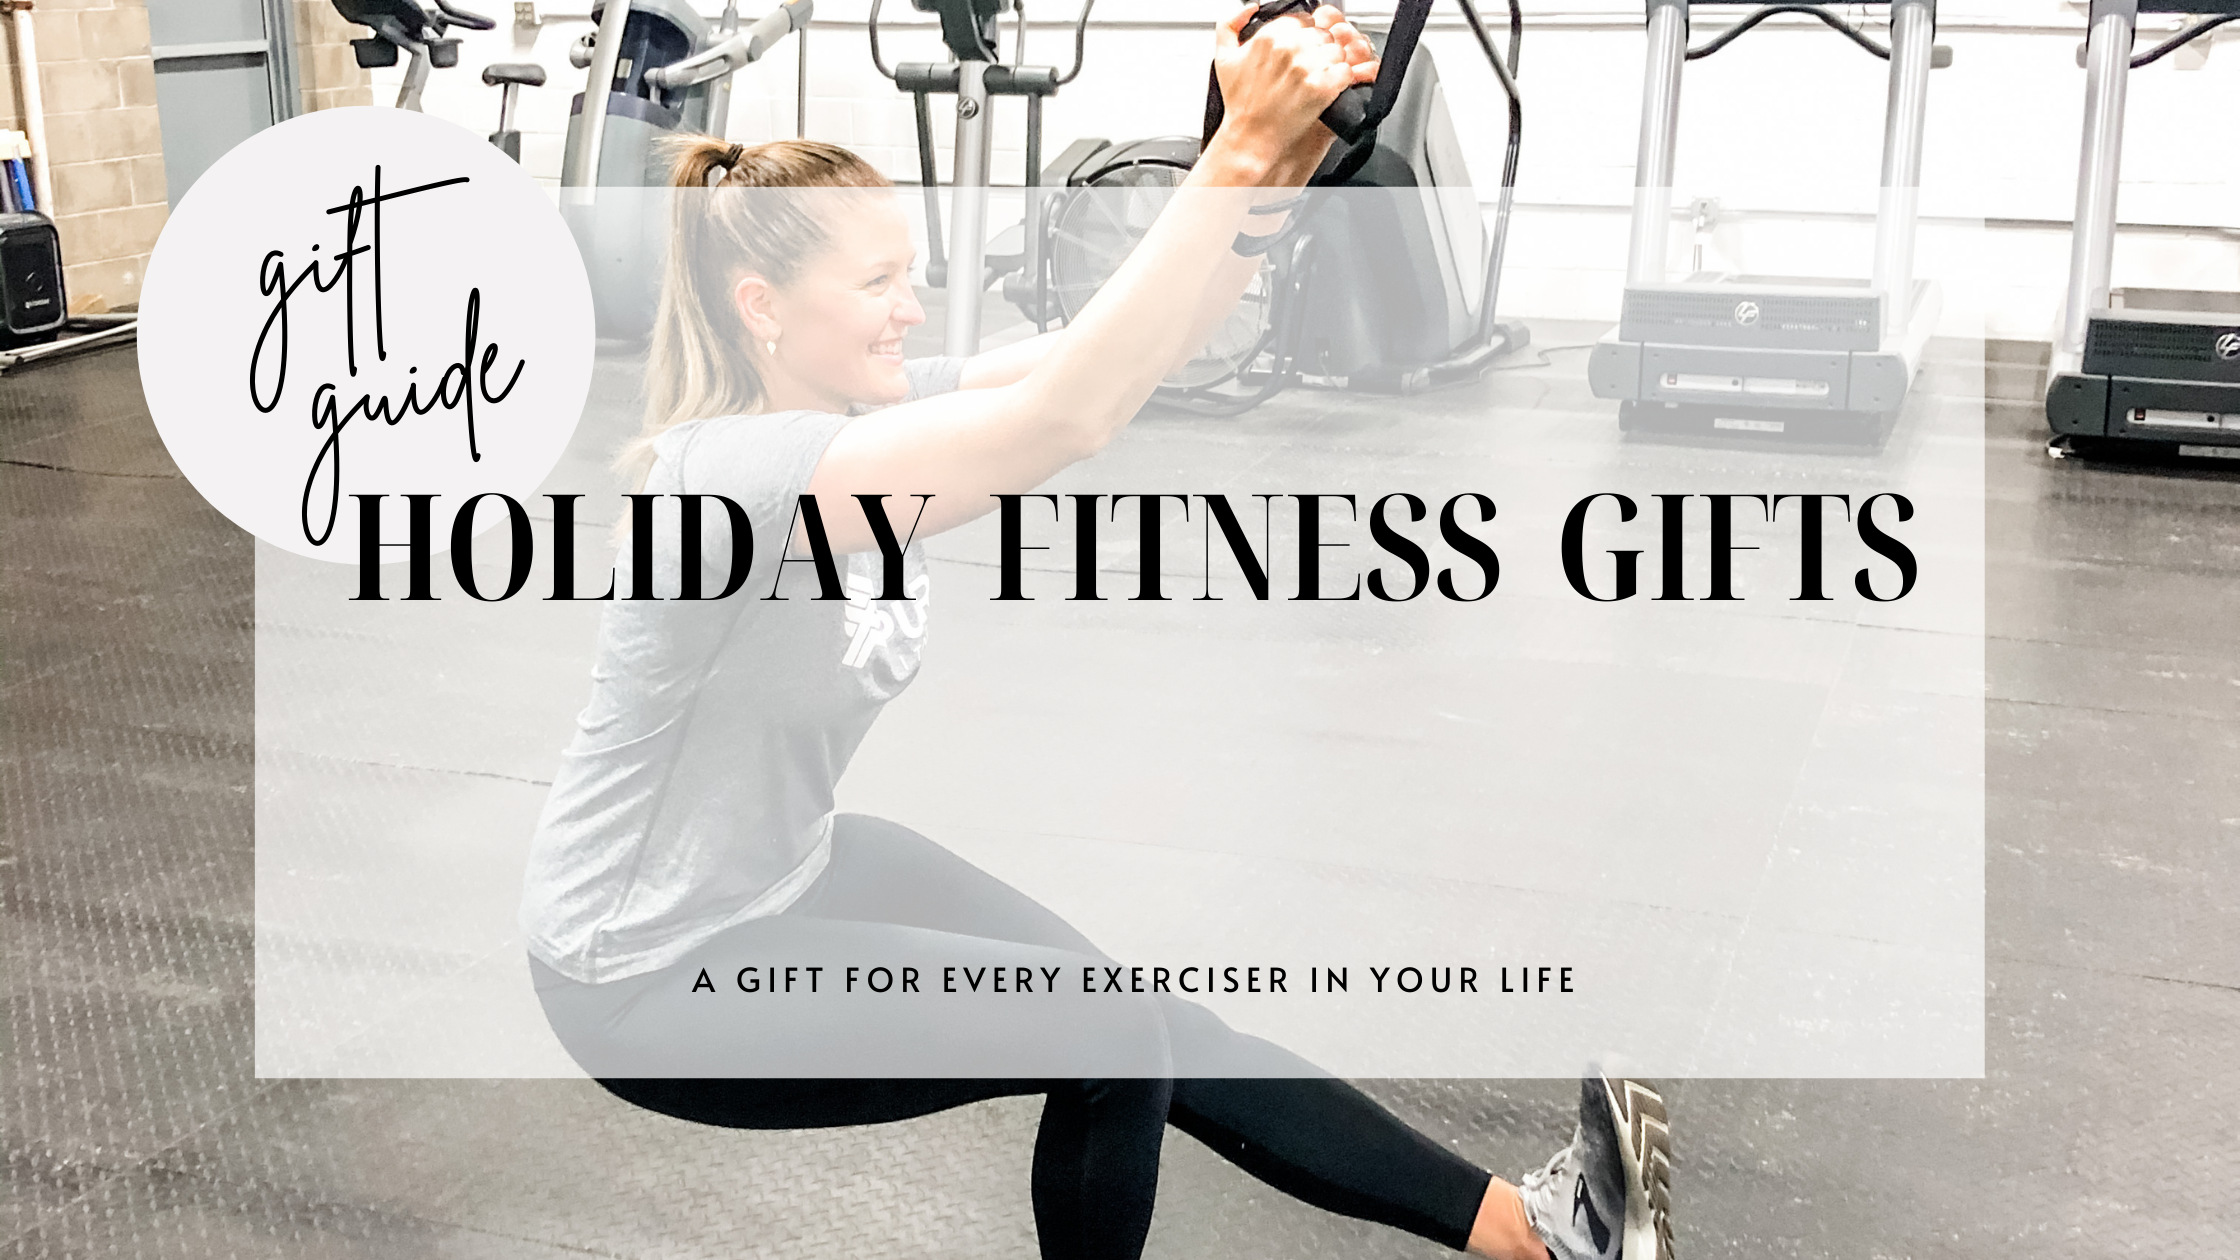 Fitness Gift Holiday Guide